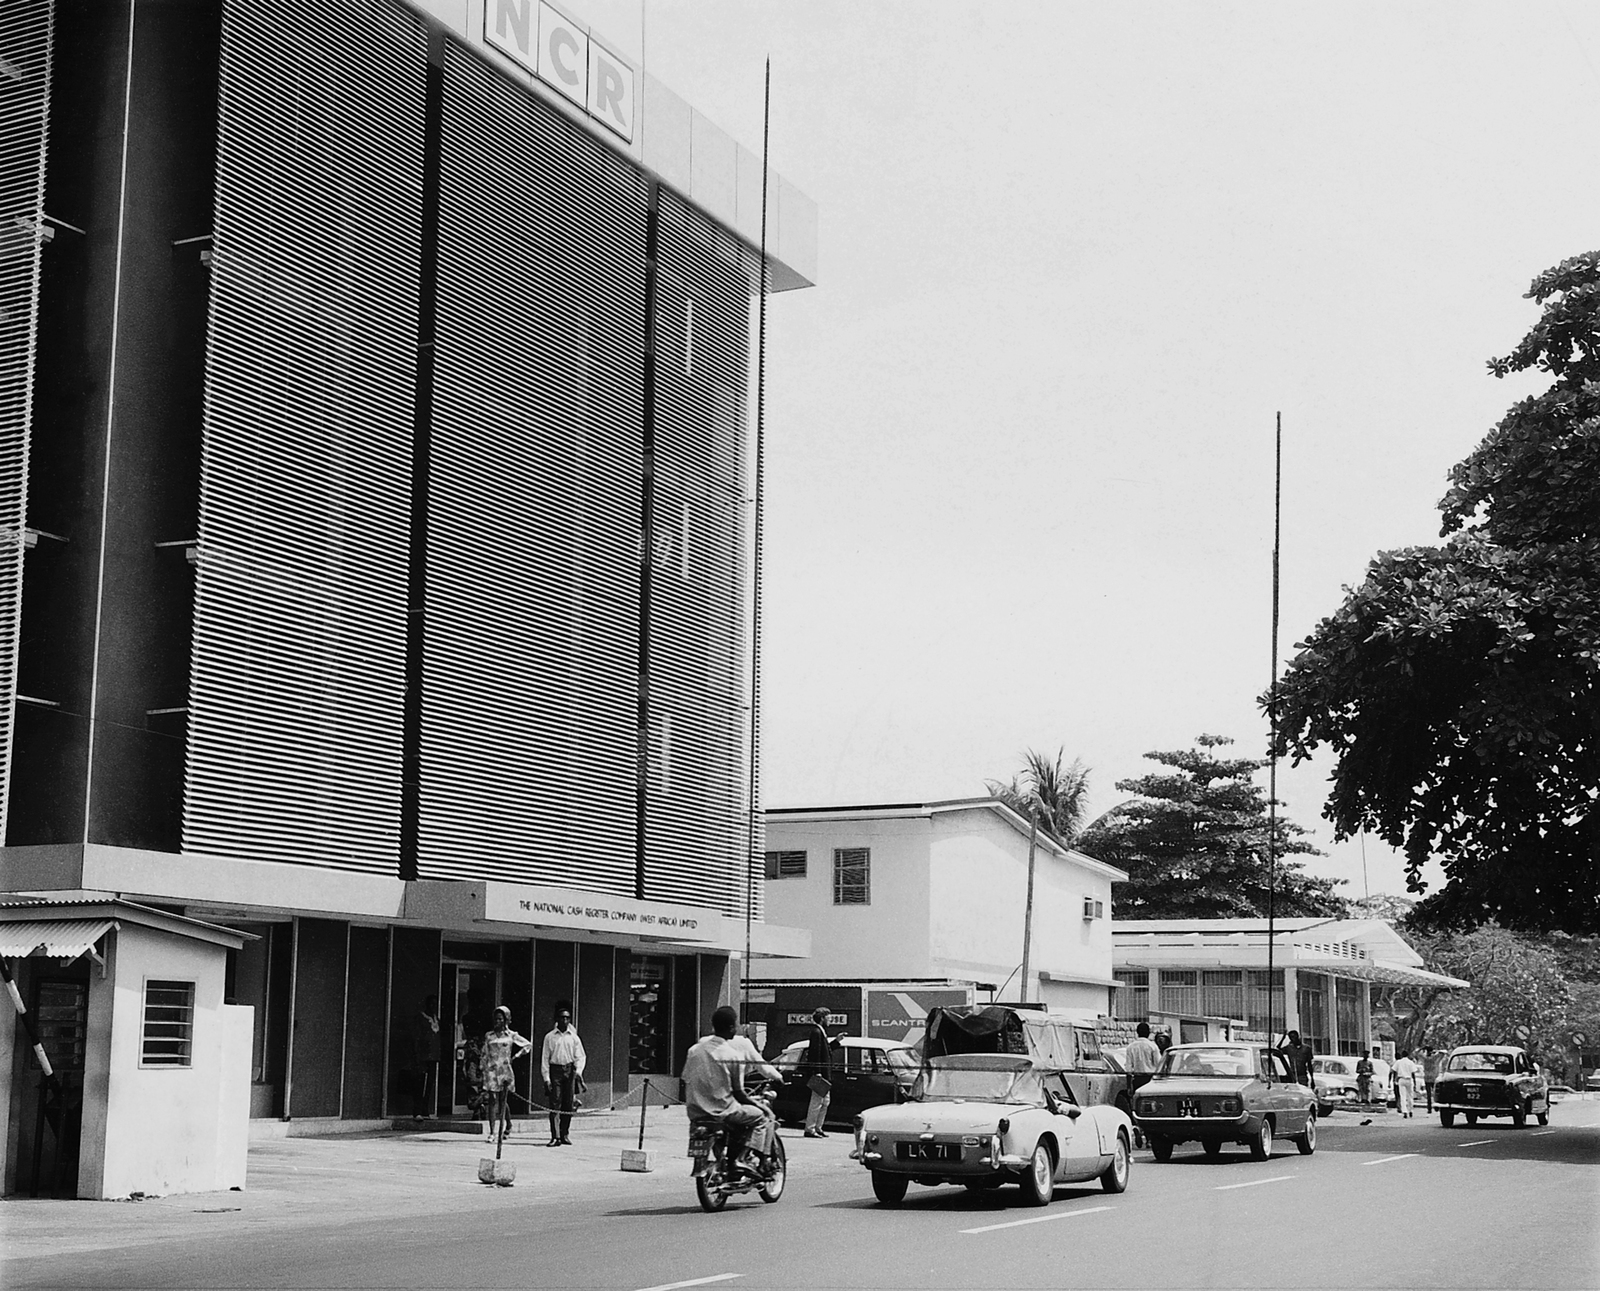 Lagos - Annex Office Building - 1991